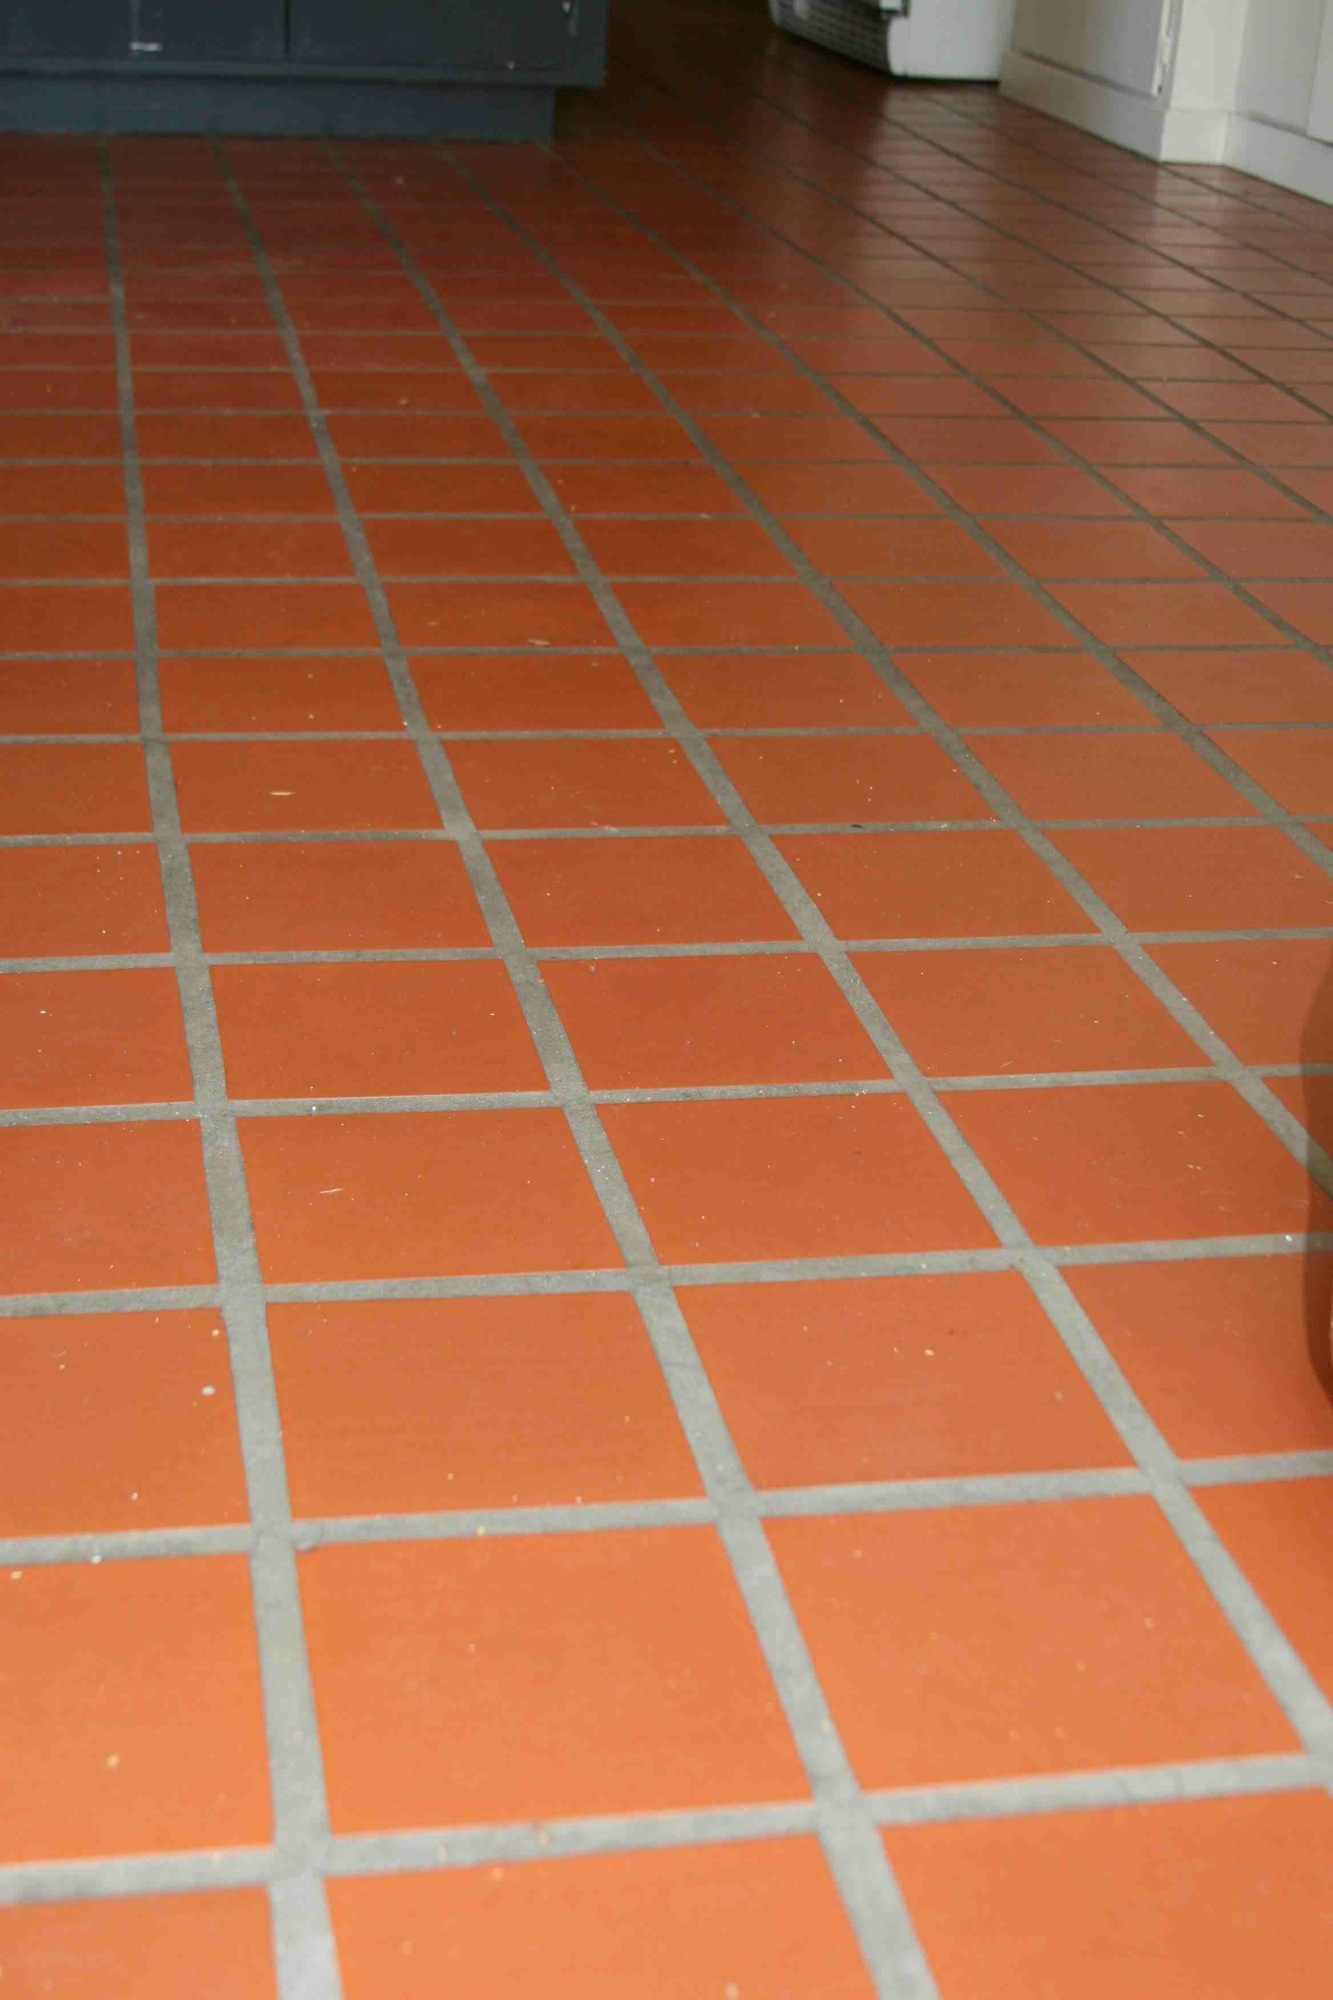 Yay cork flooring going over bad kitchen tile brand hang cork flooring going over bad kitchen tile dailygadgetfo Choice Image